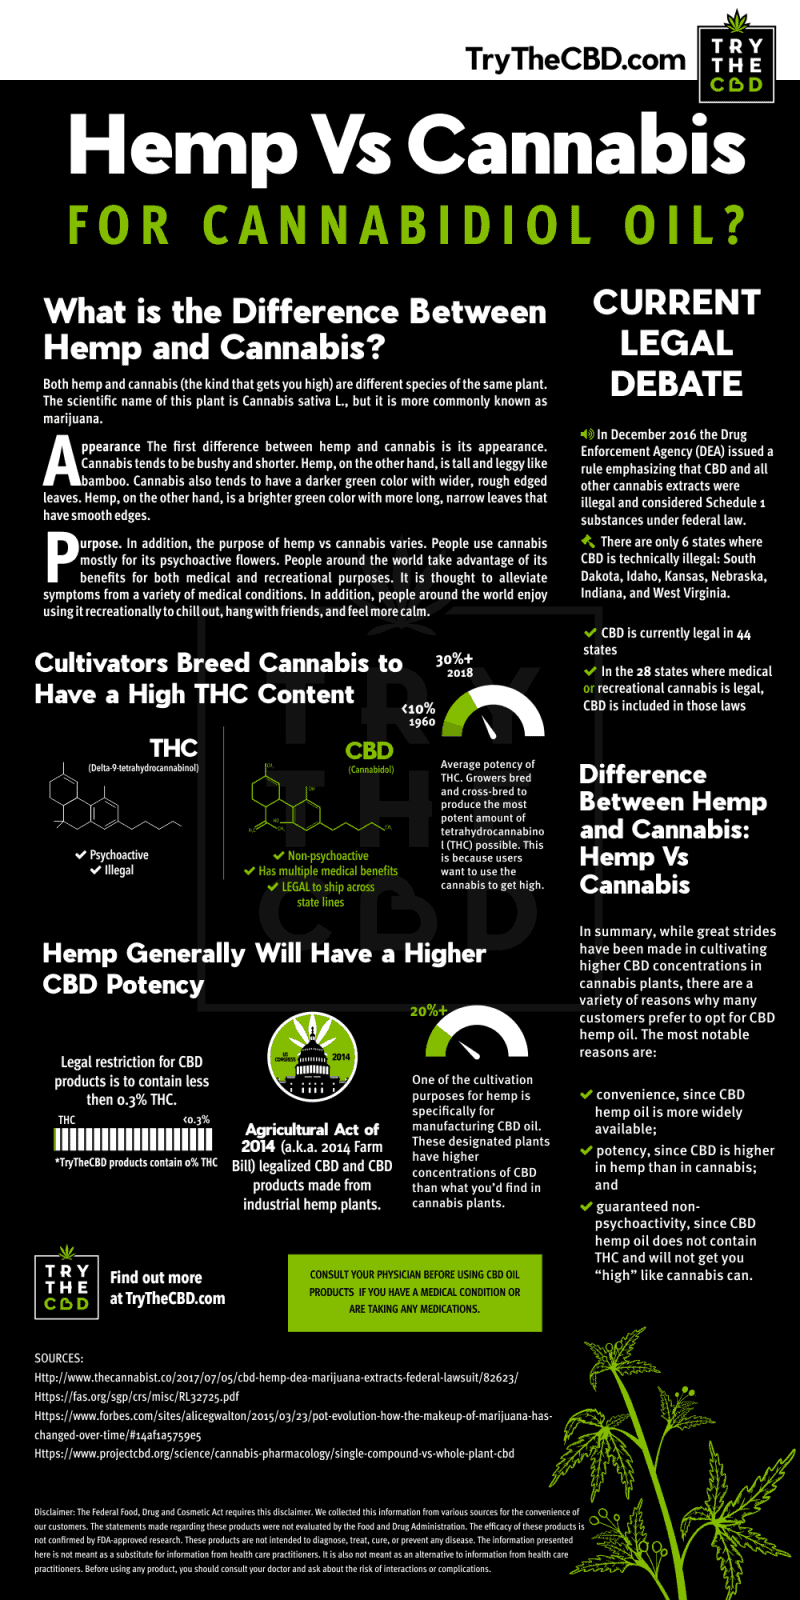 Hemp vs Cannabis Similarities and Differences